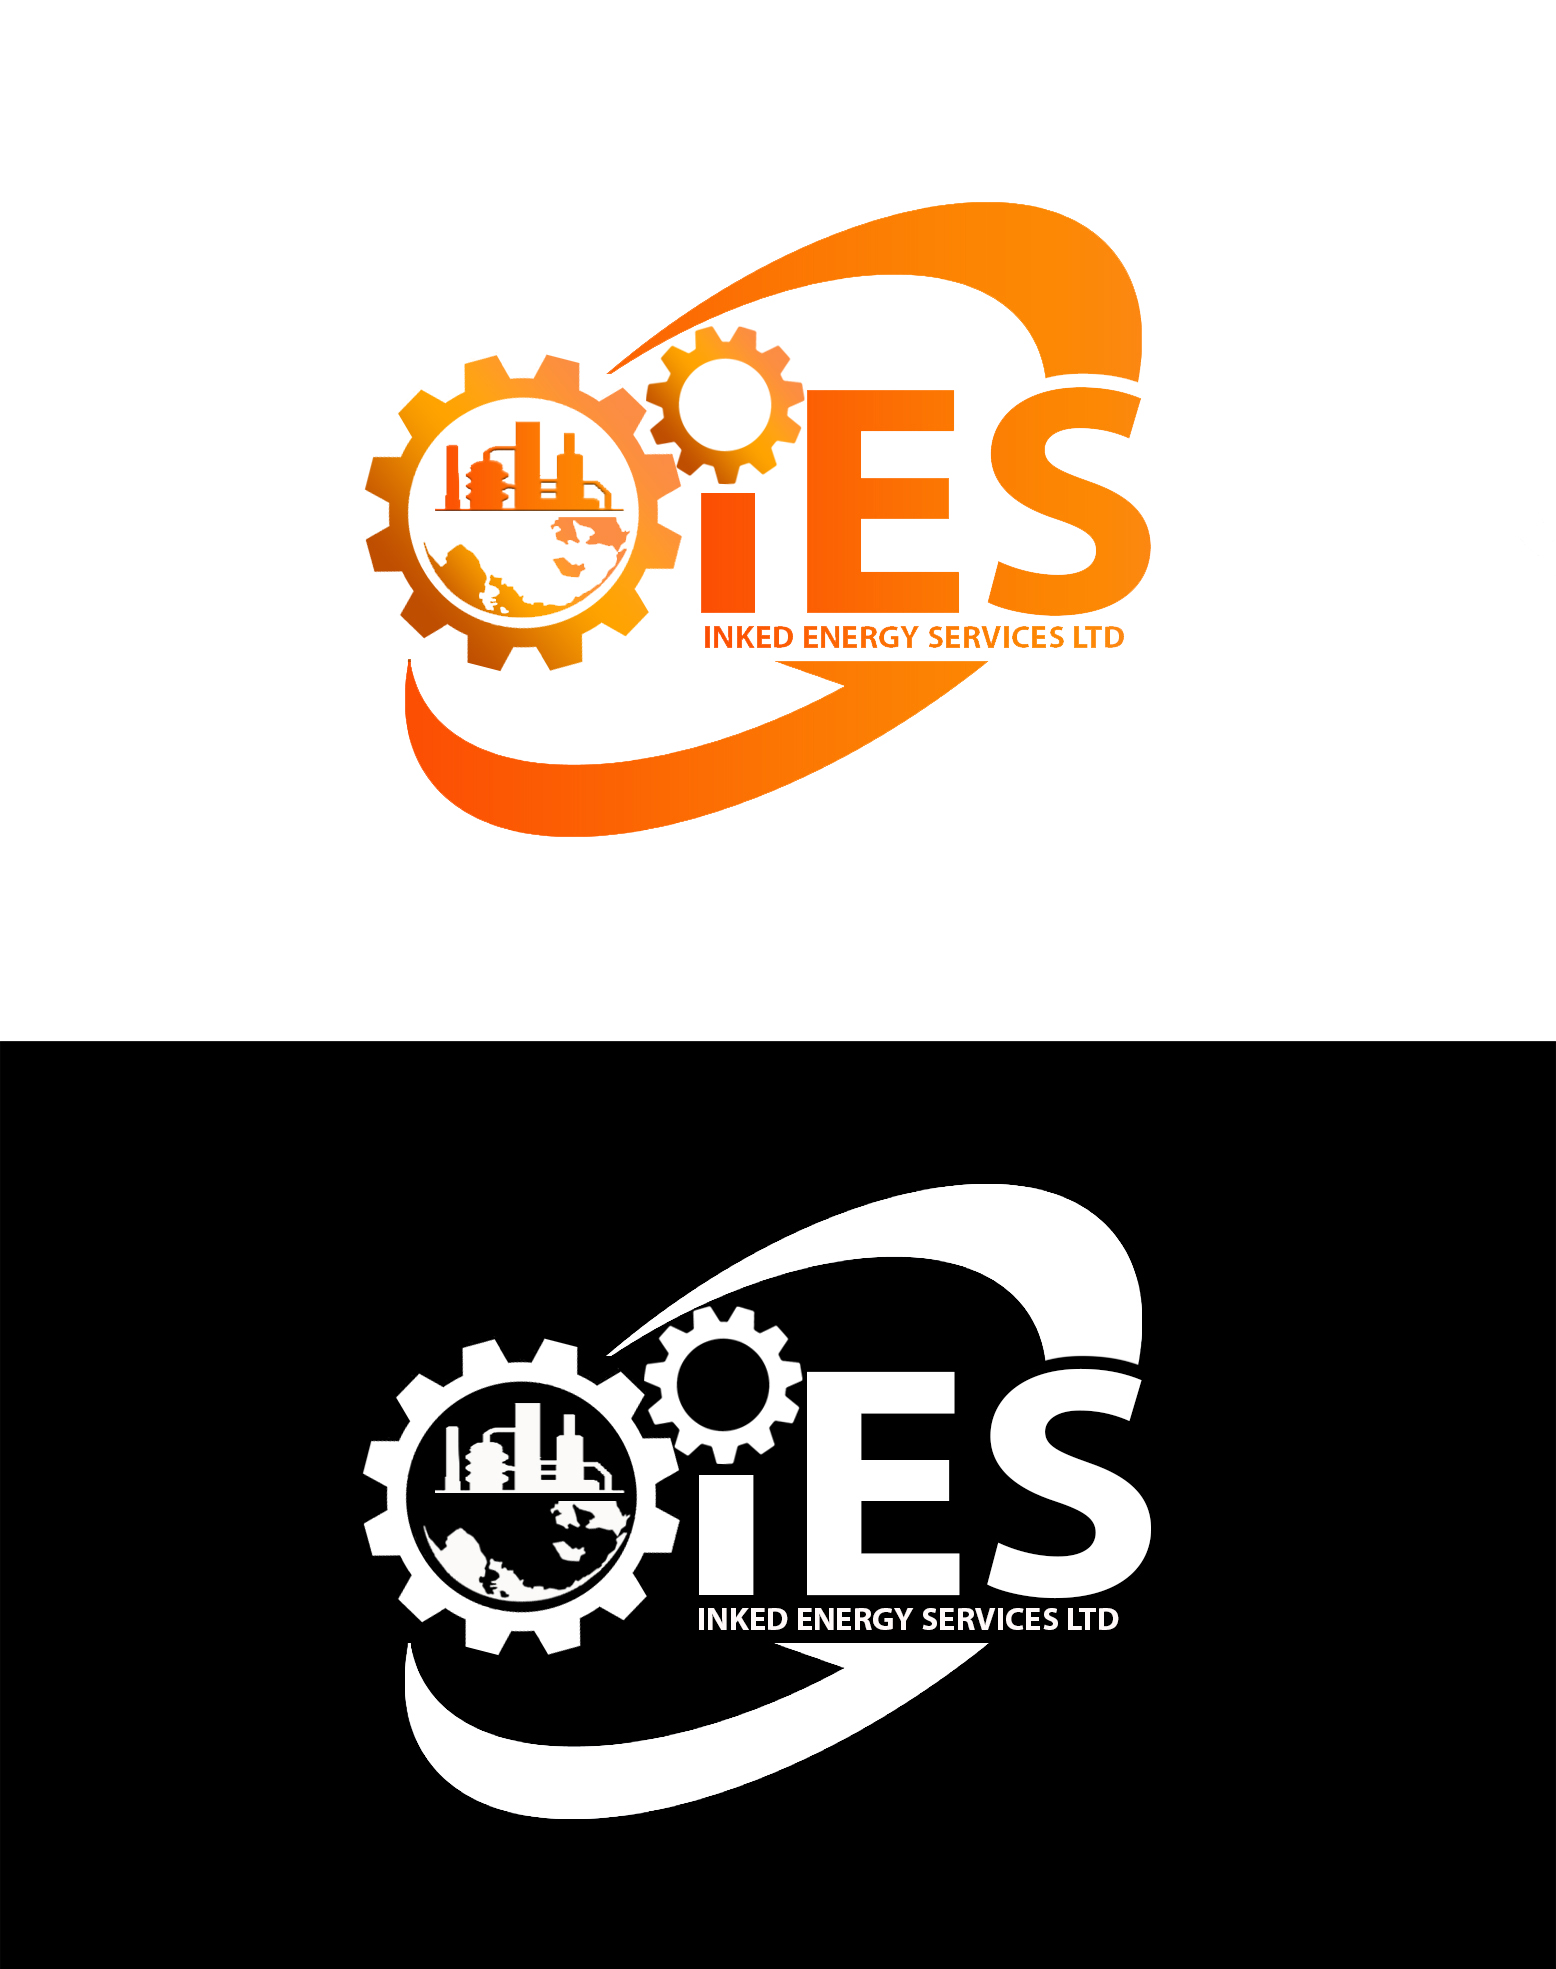 Logo Design by JSDESIGNGROUP - Entry No. 128 in the Logo Design Contest Creative Logo Design for INKED ENERGY SERVICES LTD.